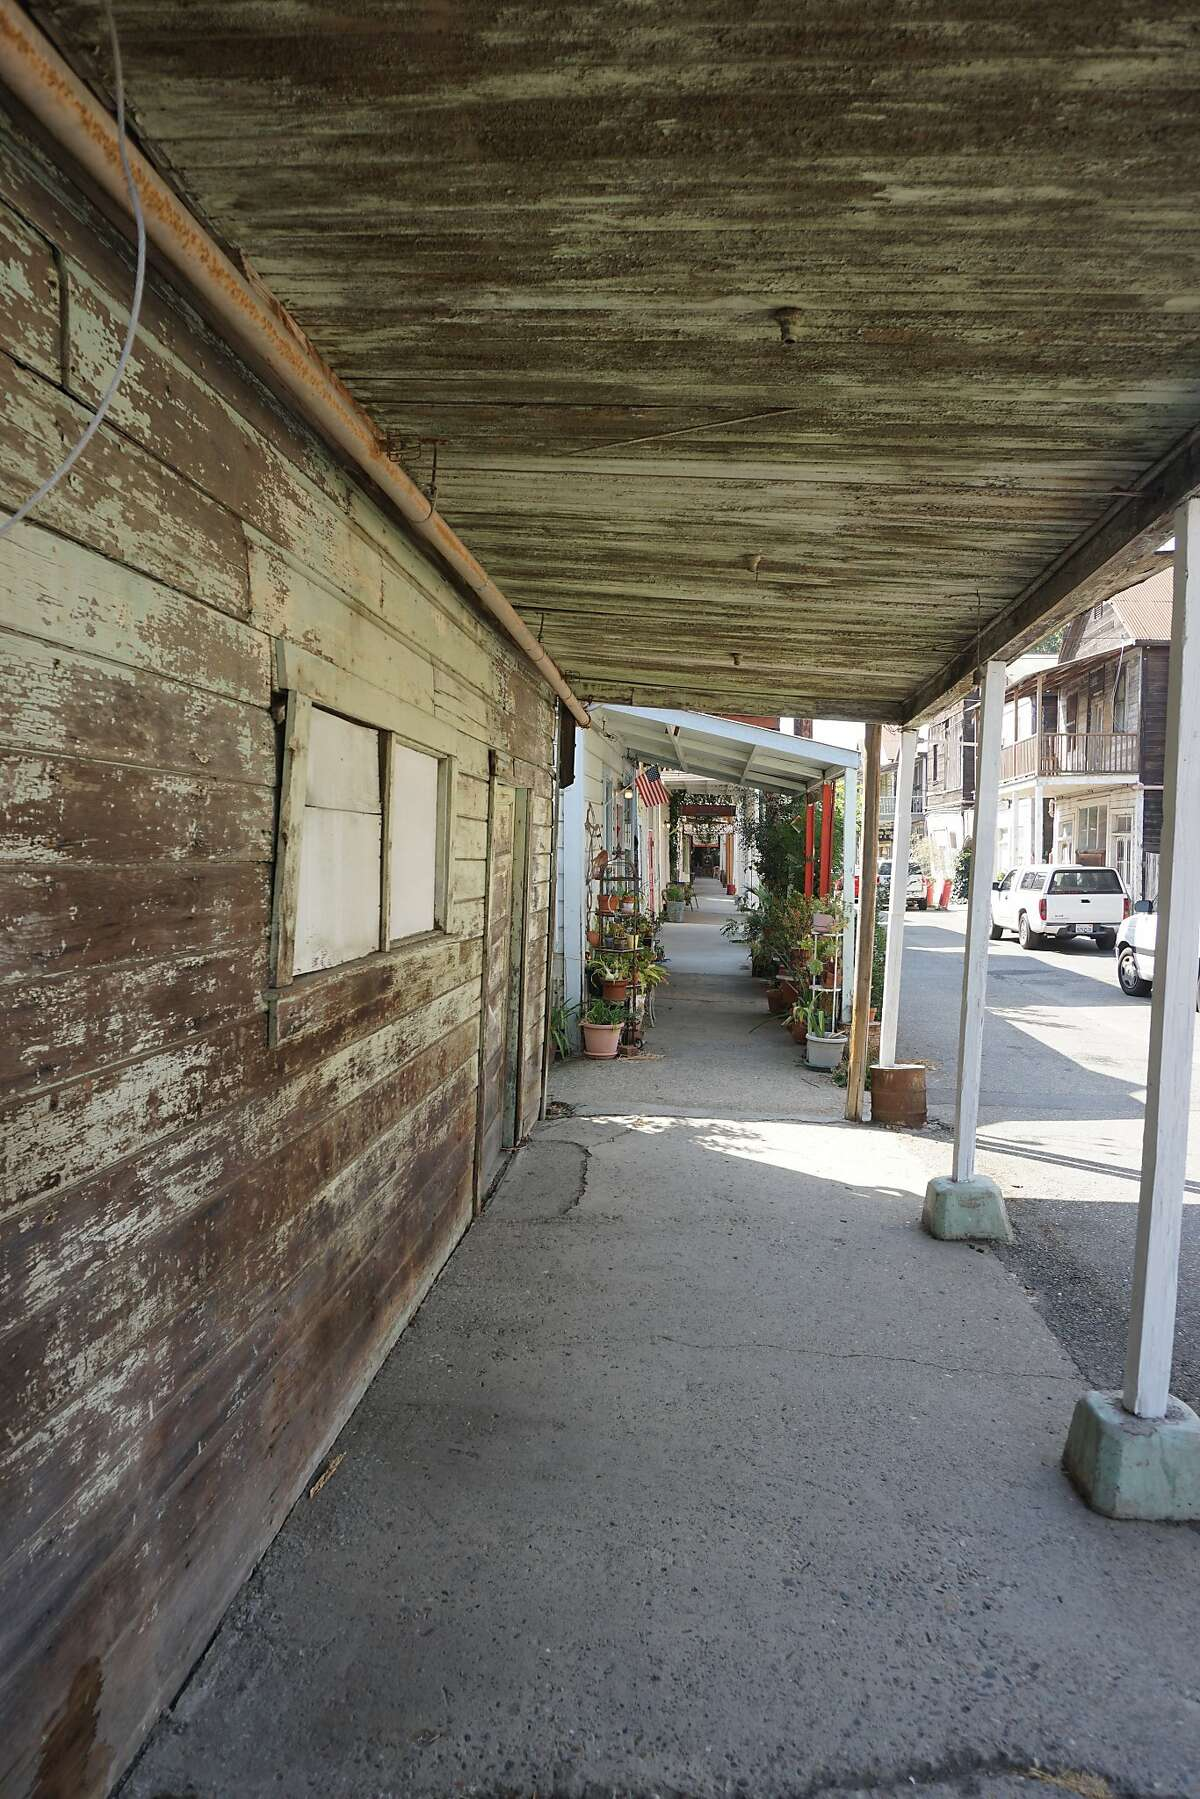 Rustic streets and storefronts in the historical Chinese enclave of Locke near Walnut Grove.